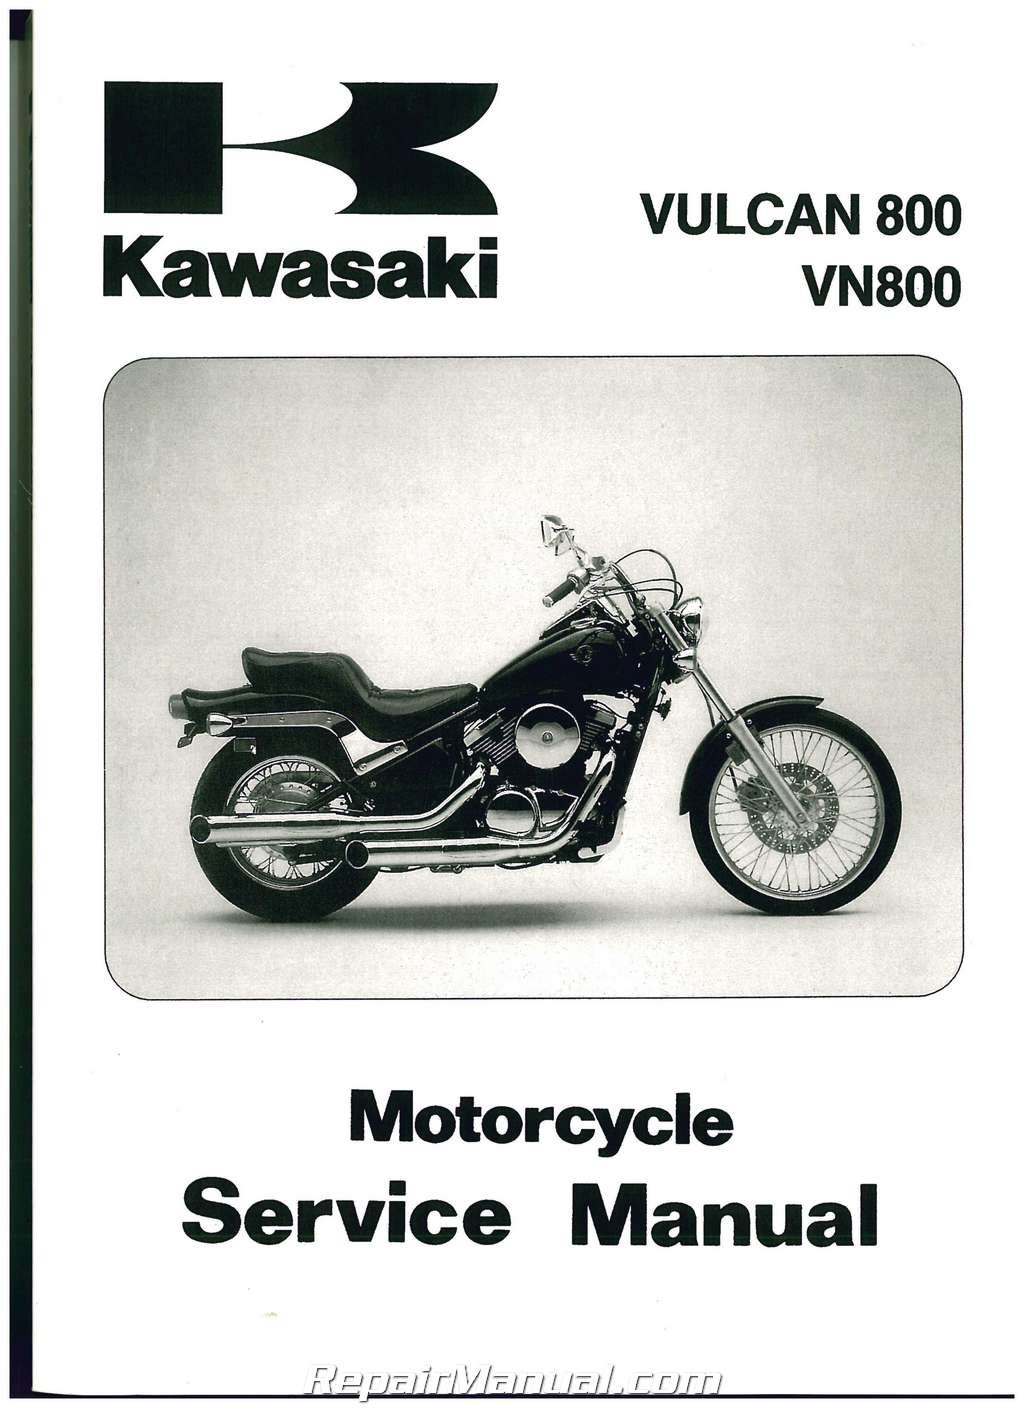 99924-1183-09 1995-2005 Kawasaki VN800 Vulcan Service Manual: Manufacturer:  Amazon.com: Books